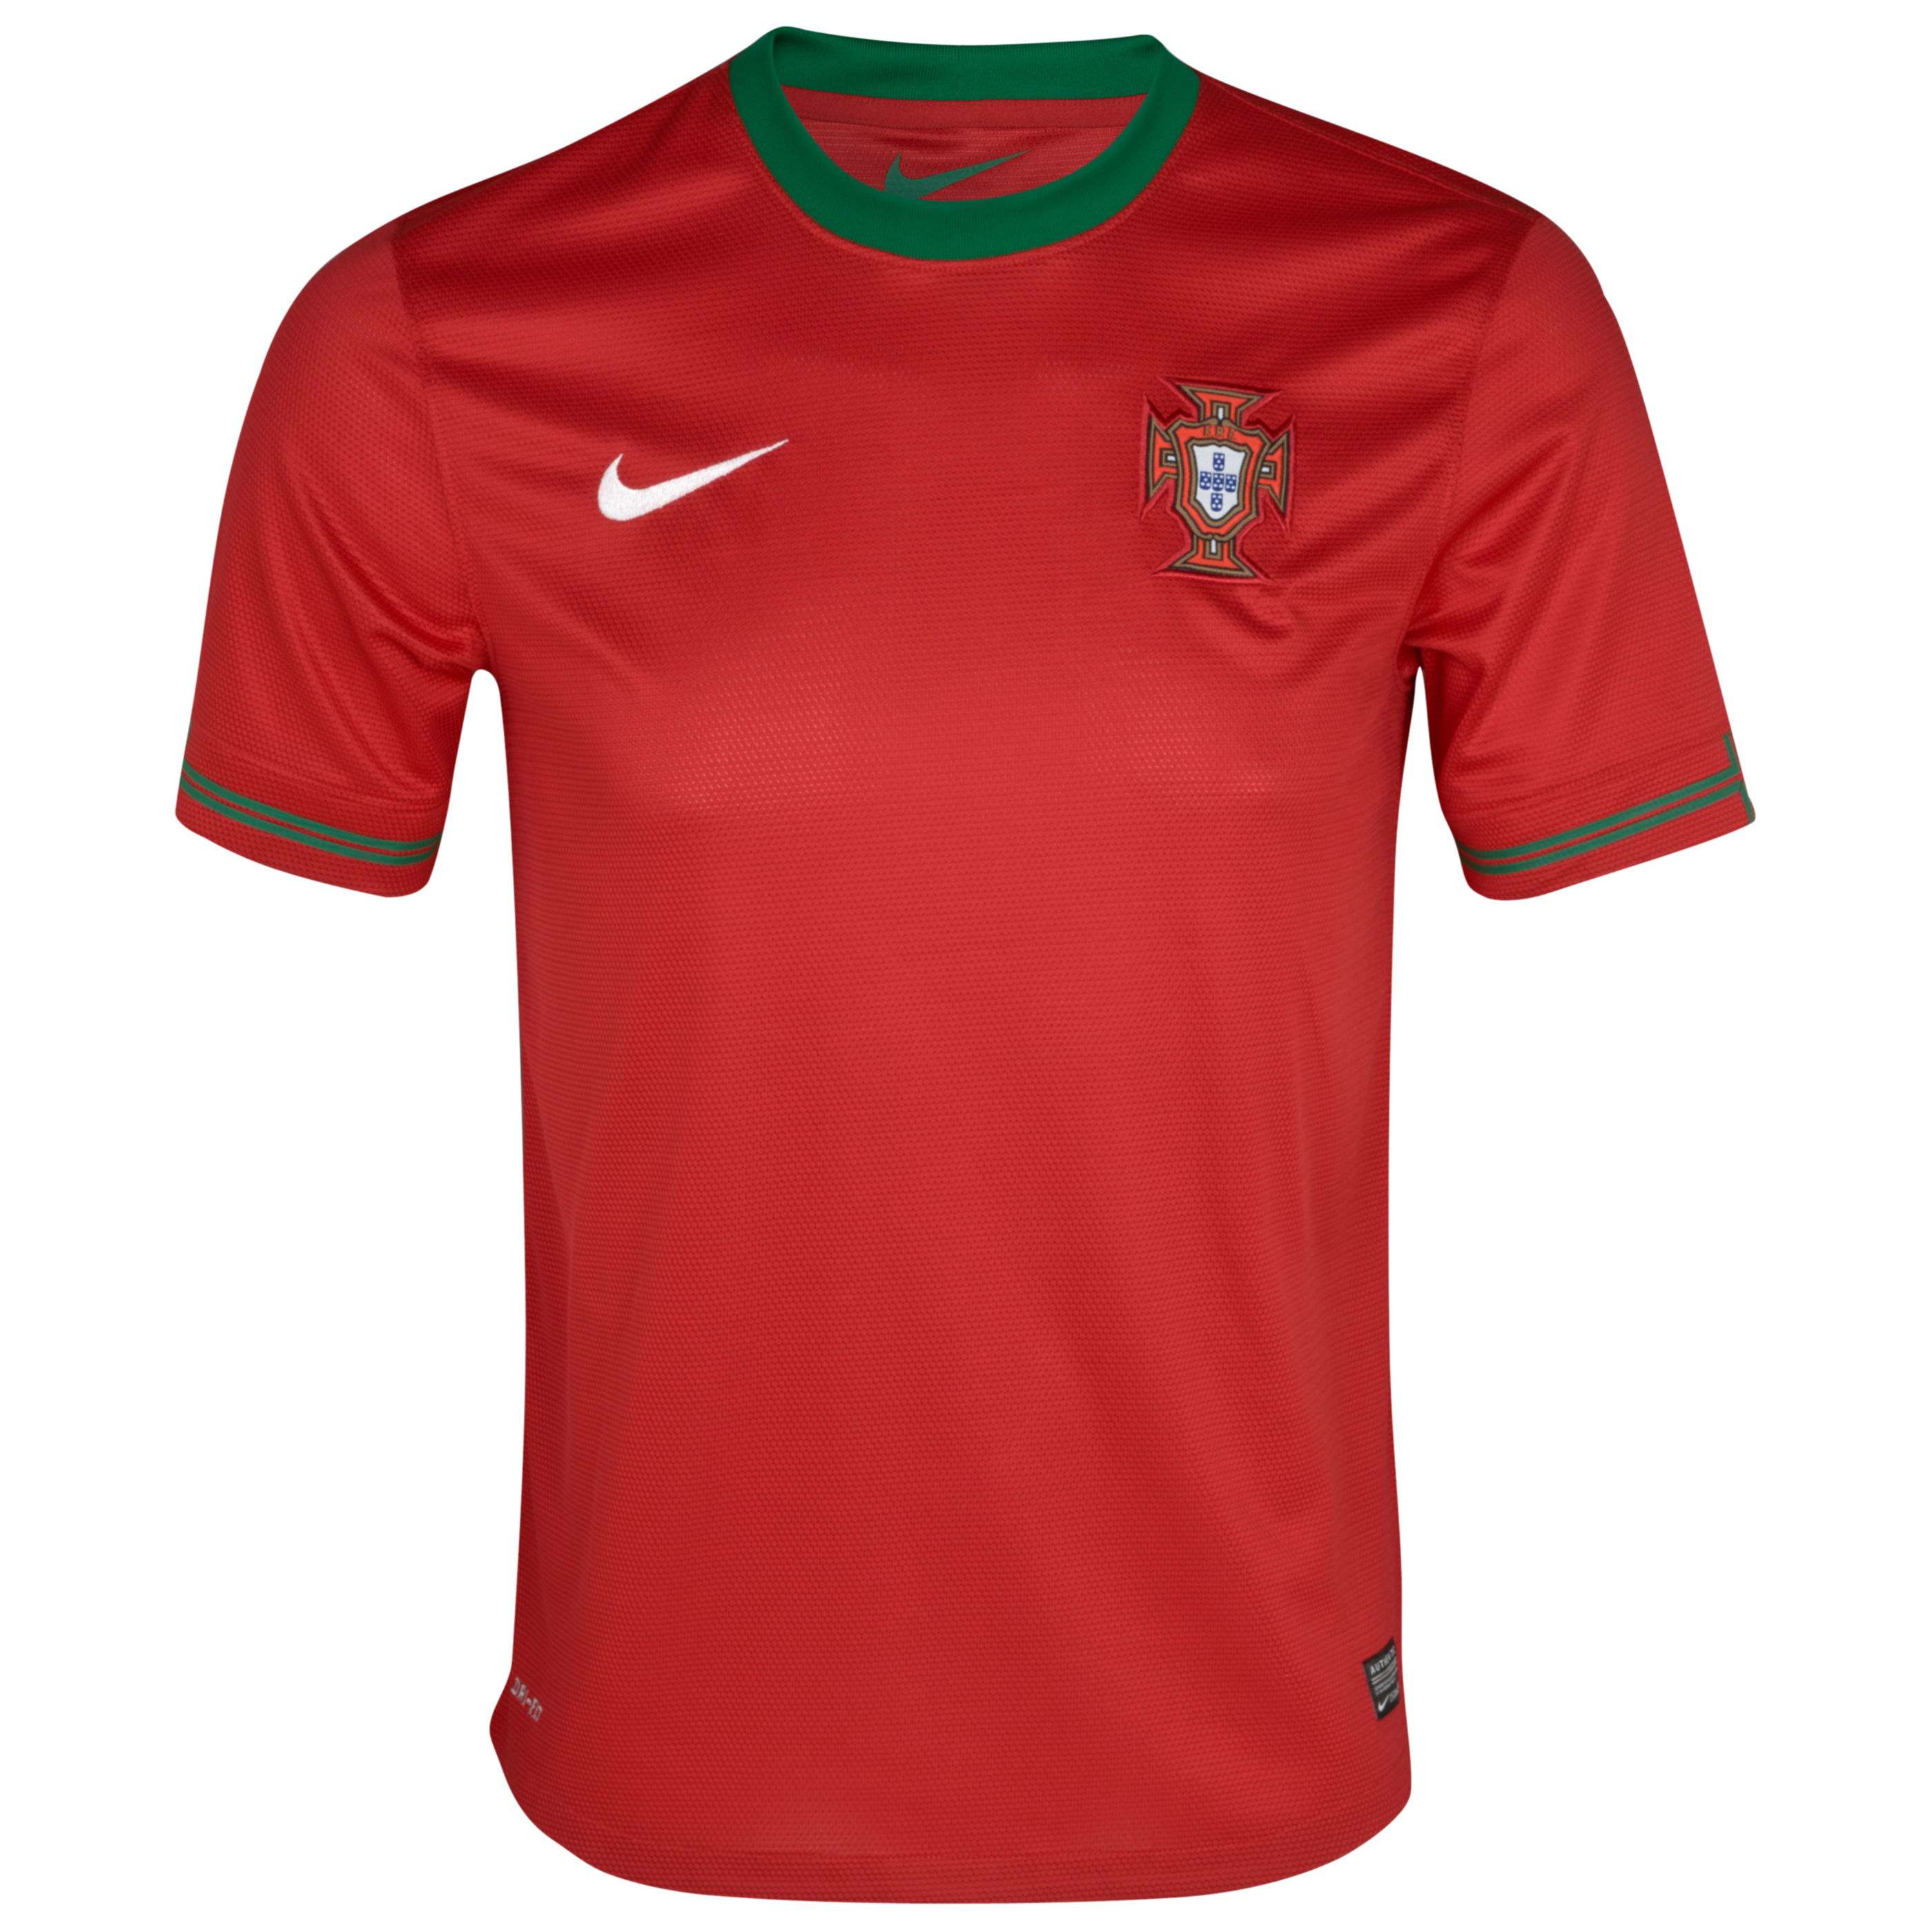 Portugal Home Shirt 2012/13